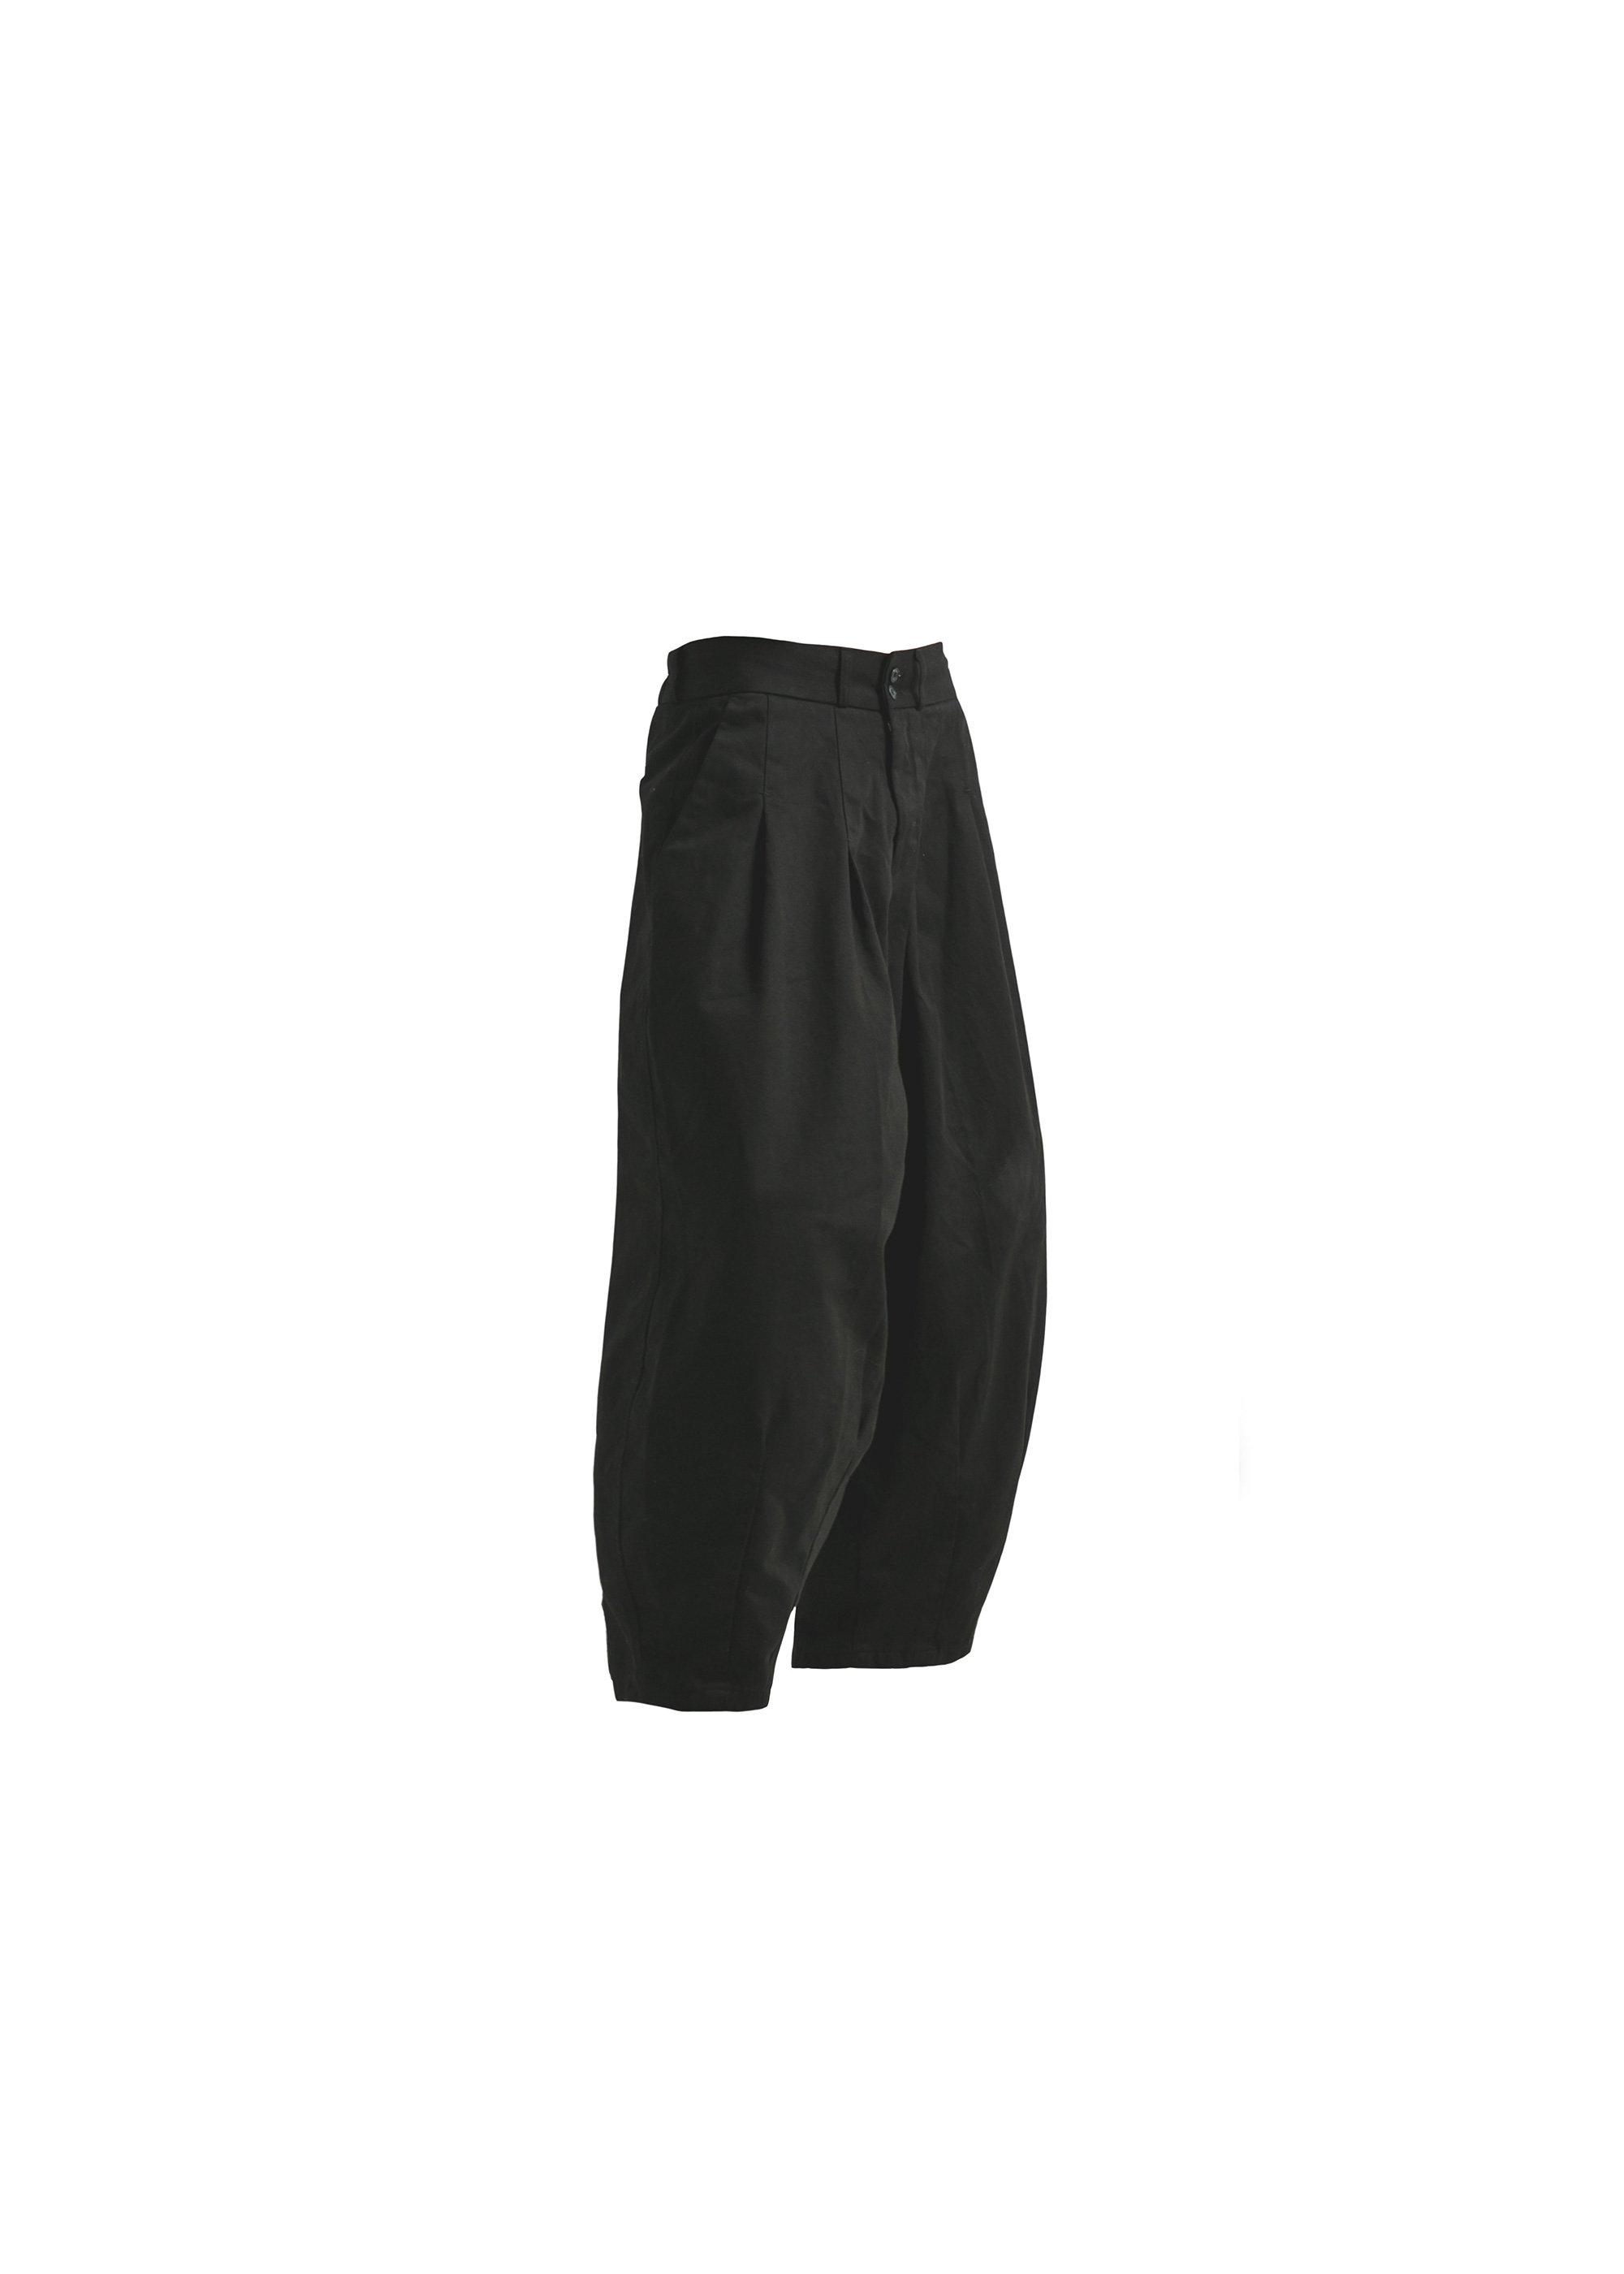 [AG] Cotton Easy Balloon Pants - Black